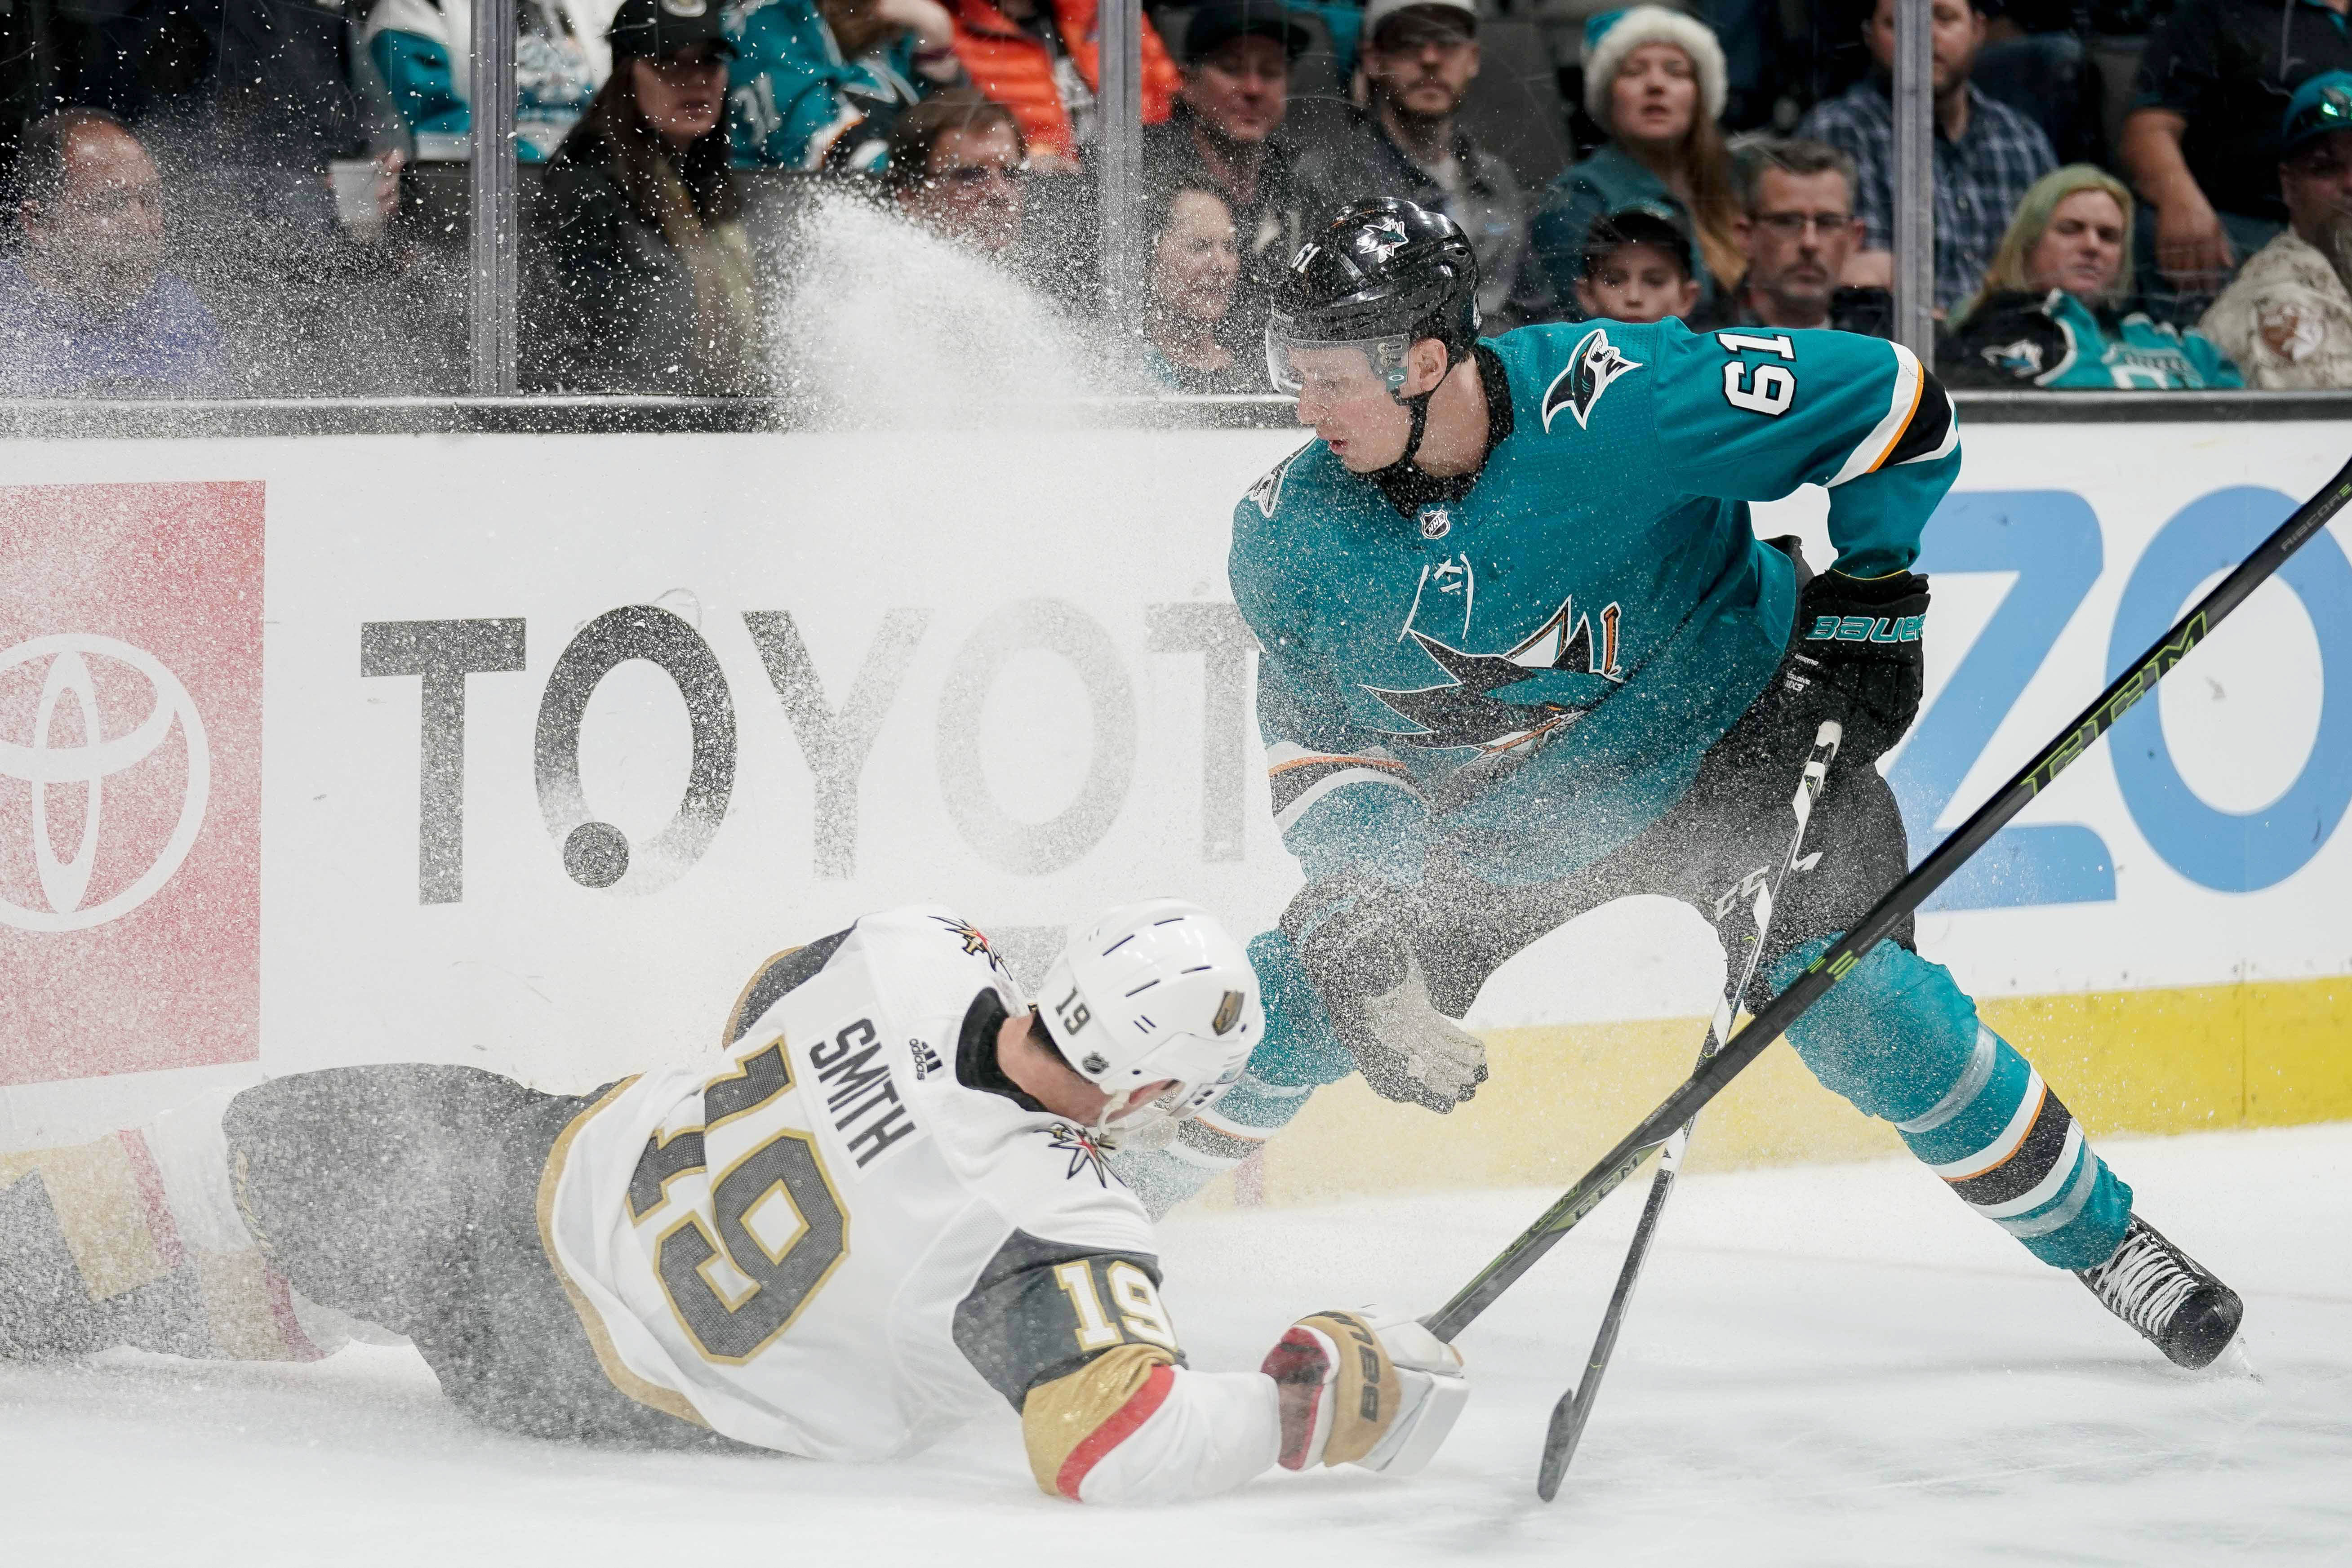 Mar 30, 2019; San Jose, CA, USA; Vegas Golden Knights right wing Reilly Smith (19) slips as San Jose Sharks defenseman Justin Braun (61) gains control of the puck during the second period at SAP Center at San Jose.